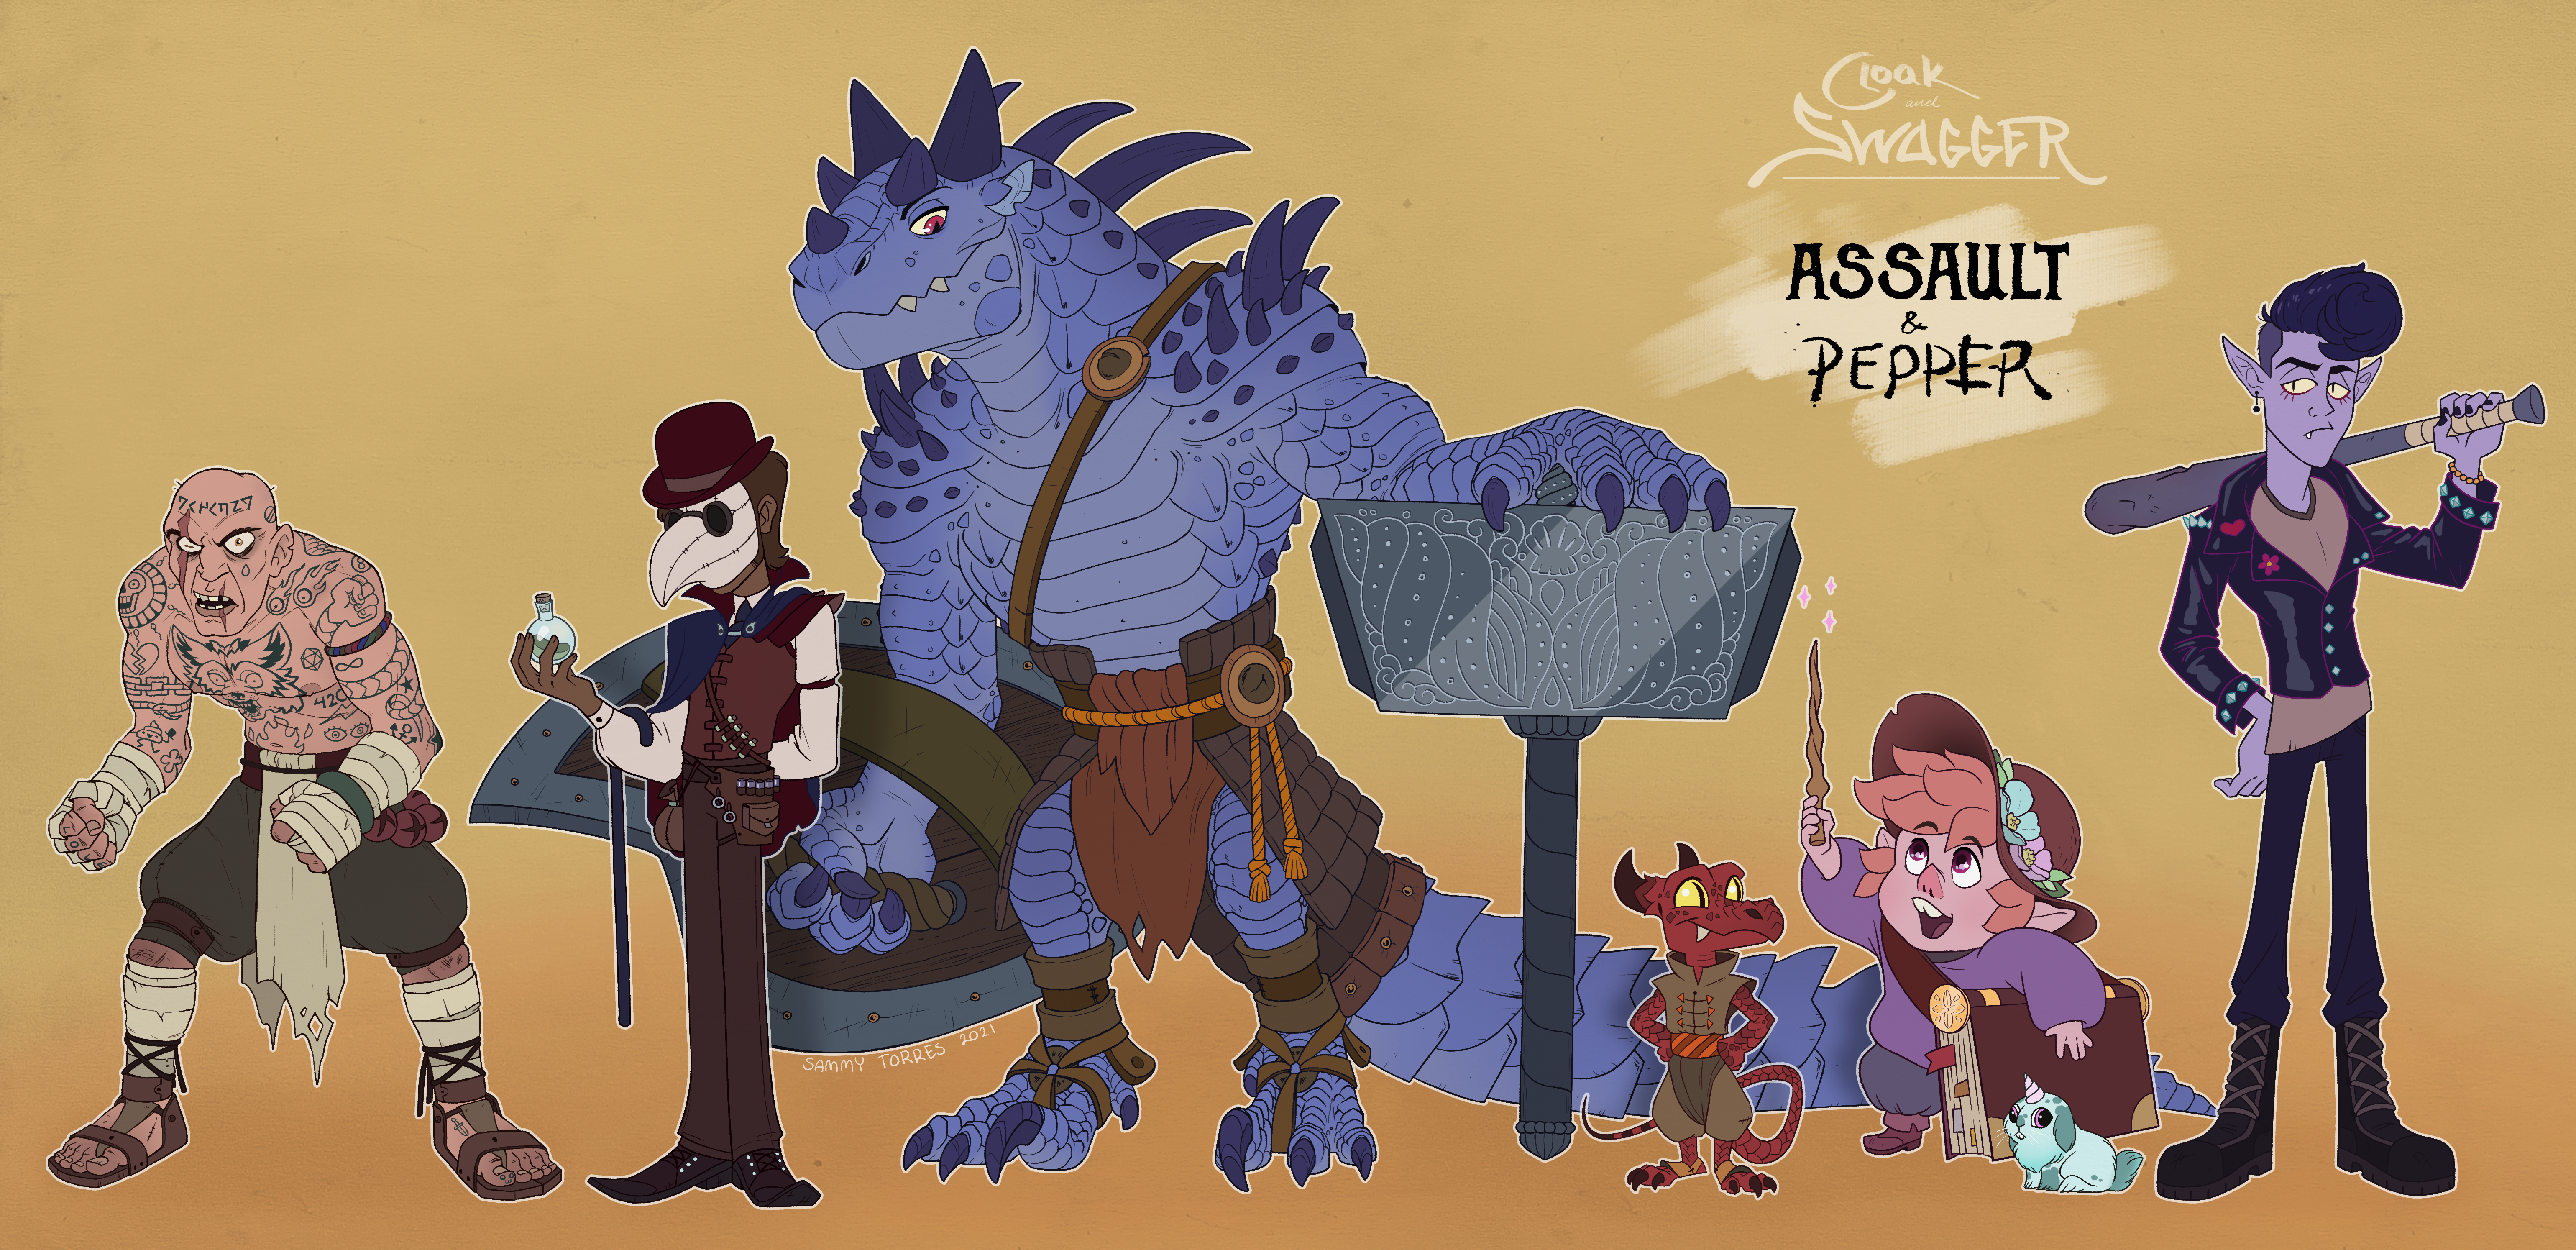 My D&D group - Assault and Pepper